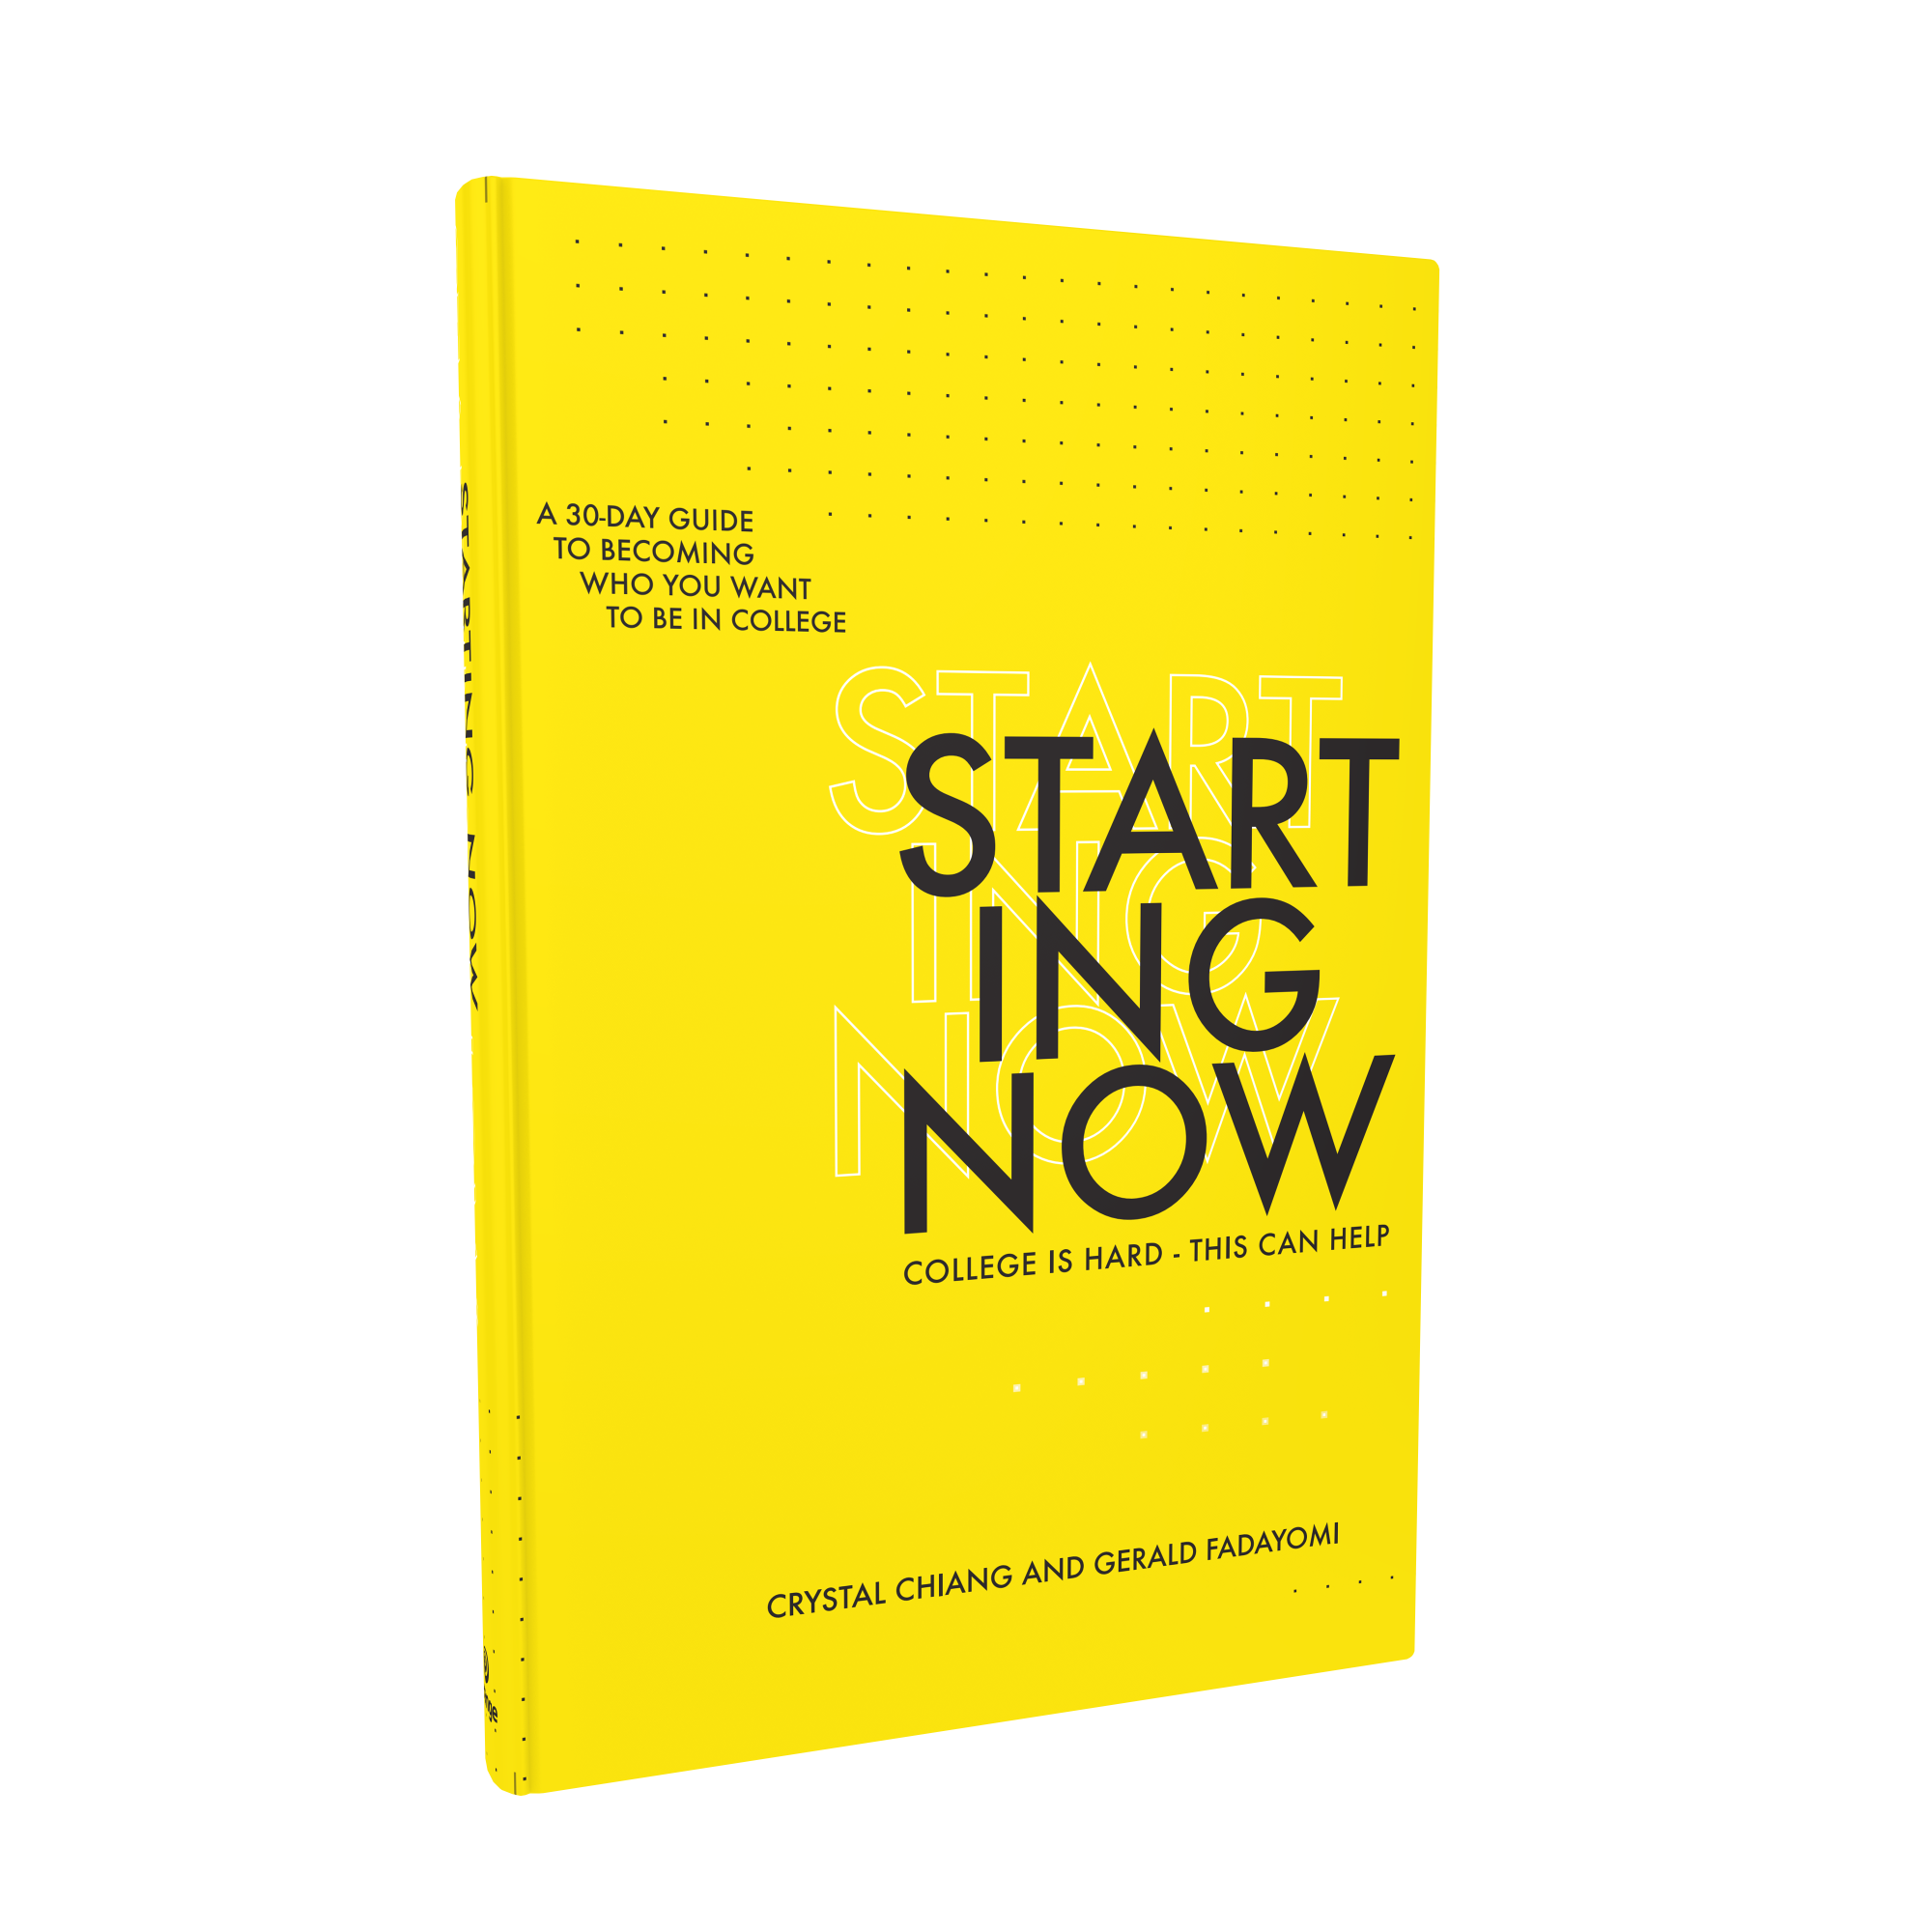 STARTING NOW - a 30 day guide to becoming who you want to be in college.